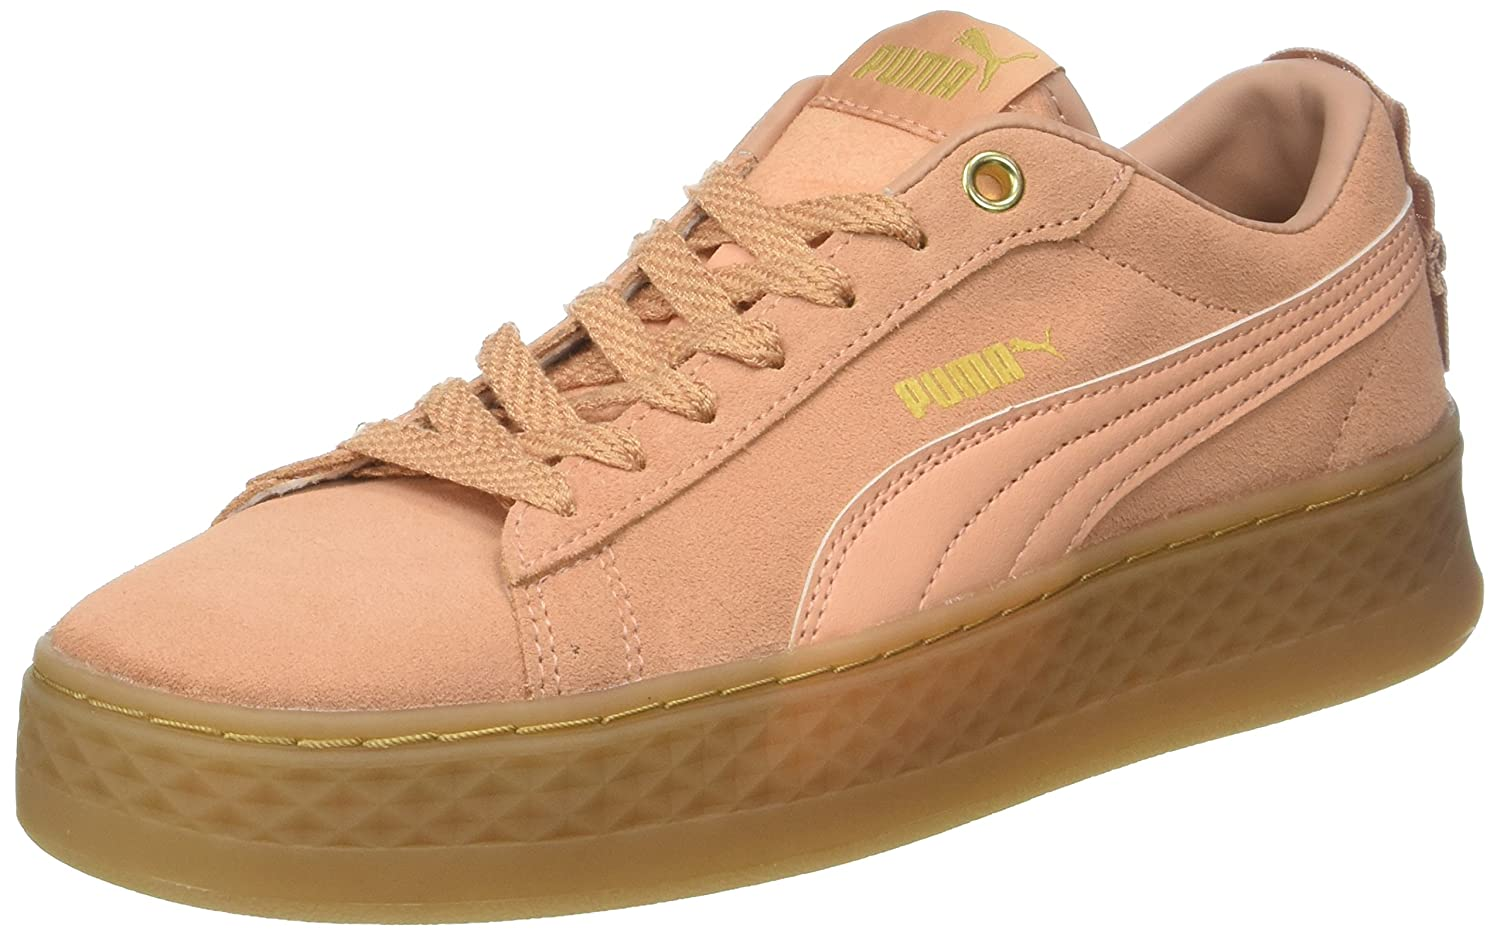 Puma Womens Smash Platform Frill Low-Top Sneakers, Dusty Coral-Dusty Coral- Puma Team Gold, 7.5 UK